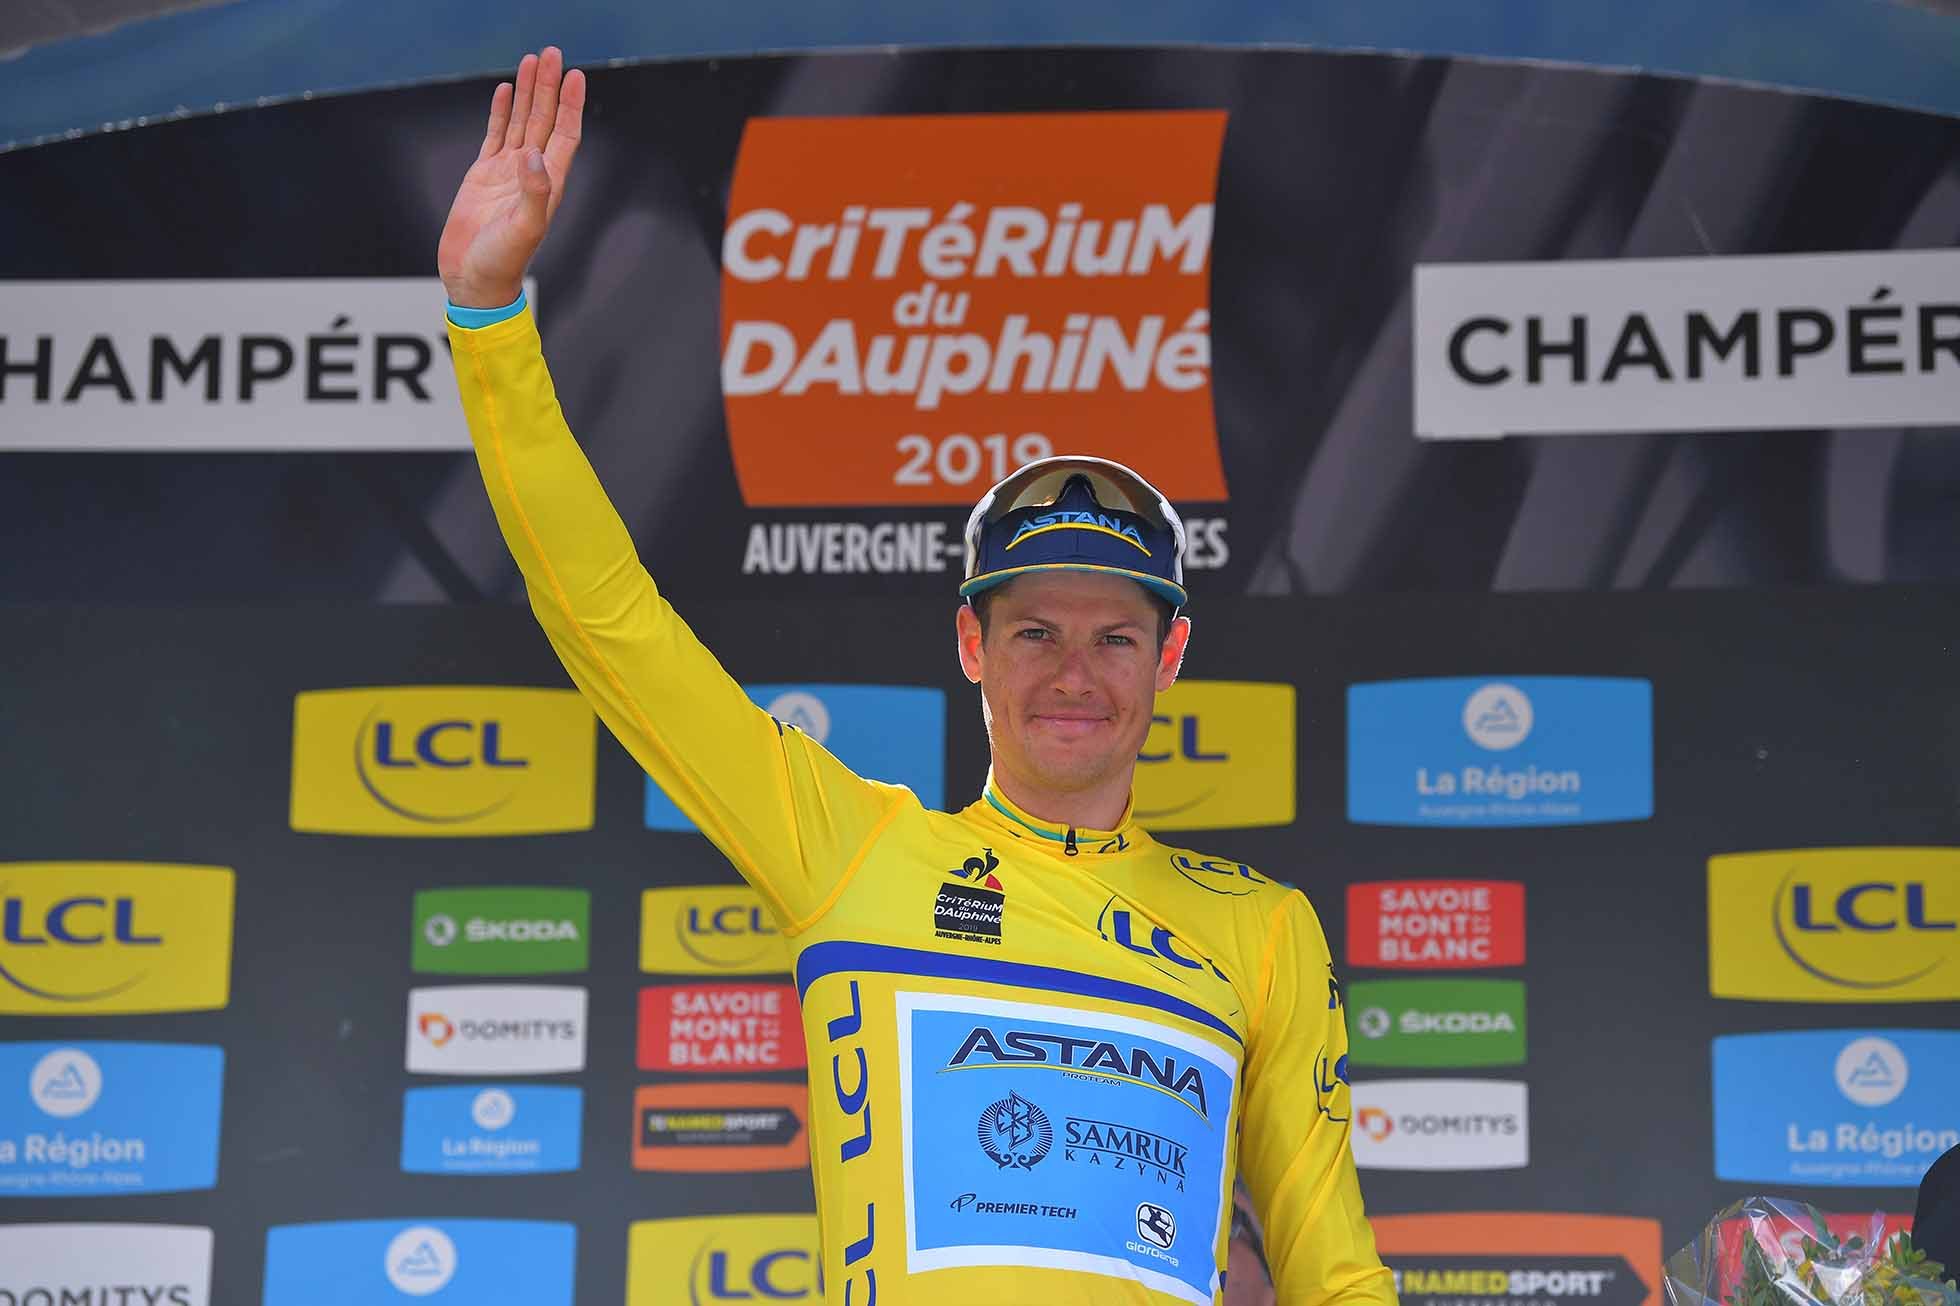 CHAMPÉRY, SWITZERLAND - JUNE 16: Podium / Jakob Fuglsang of Denmark and Astana Pro Team Yellow Leader Jersey / Celebration / during the 71st Criterium du Dauphine 2019, Stage 8 a 113,5km stage from Cluses to Champéry - Montée de Champéry 1036m / #Dauphine / @dauphine / on June 16, 2019 in Champéry, Switzerland. (Photo by Tim de Waele/Getty Images)